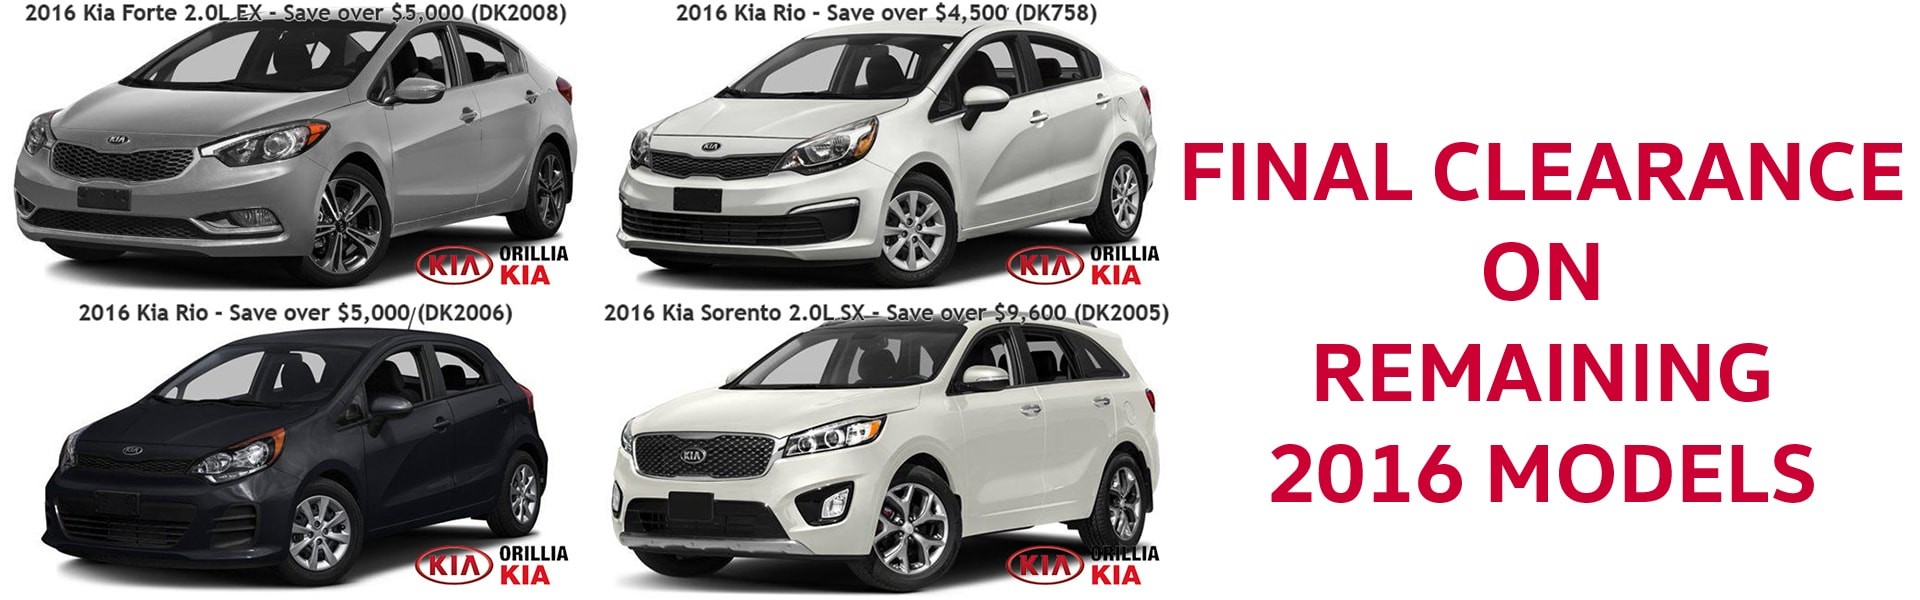 Final Clearance on Remaining New 2016 Kia Models